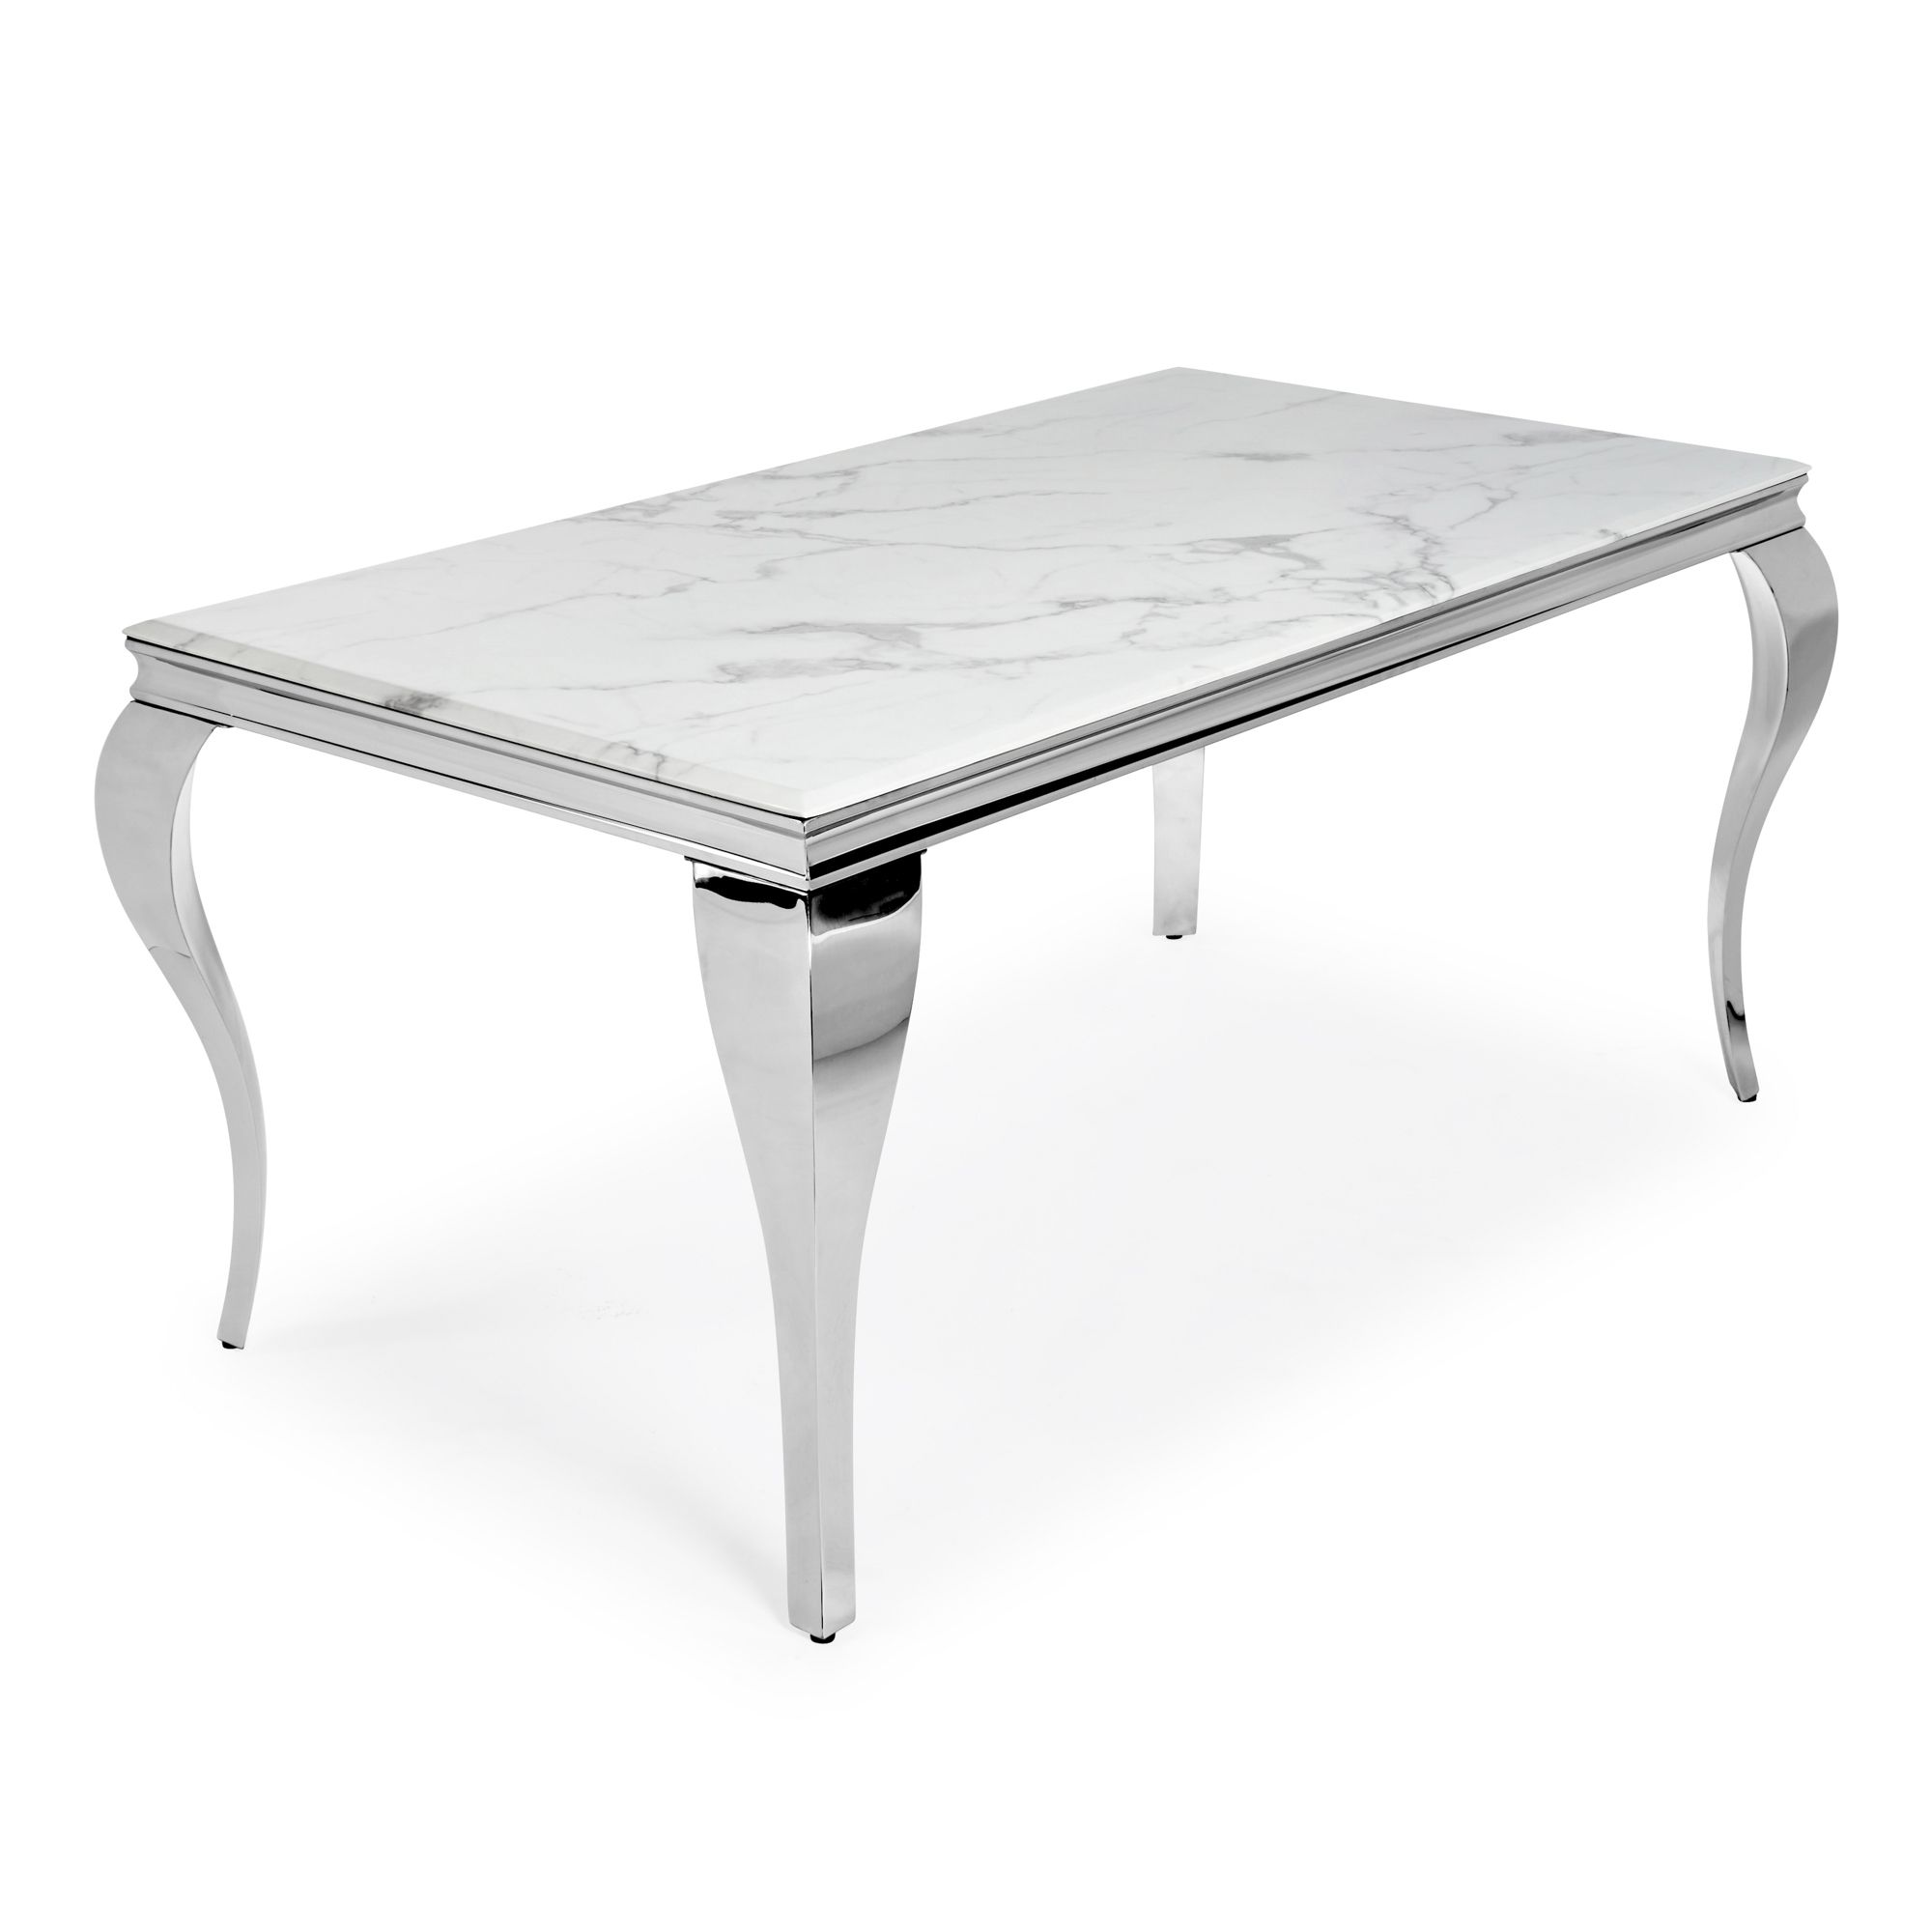 1.8m Louis Dining Table in Polished Steel with White Marble Top